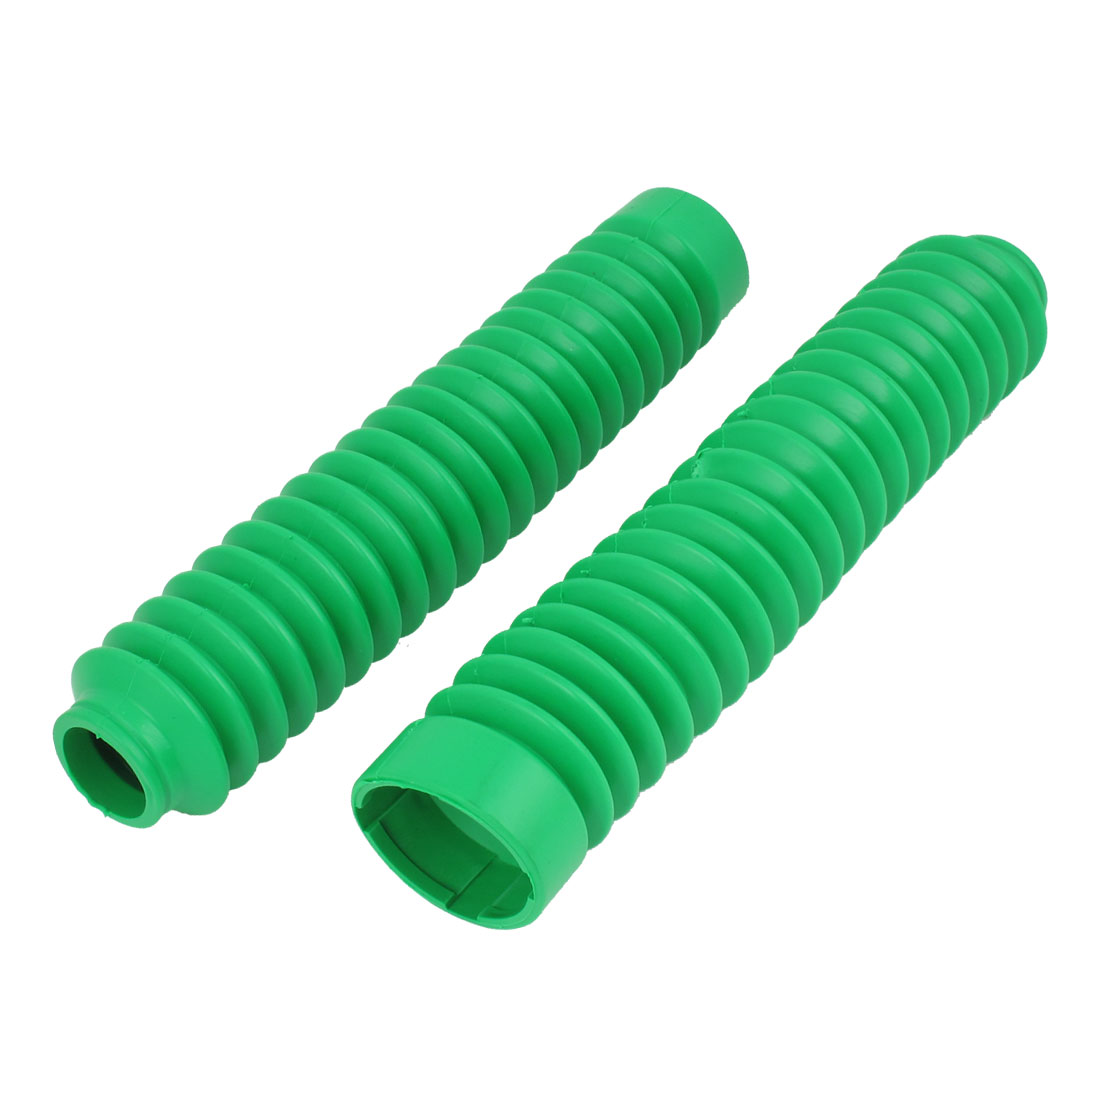 Pair 26cm Long Front Fork Cover Shock Absorber Dust Rubber Cover Green